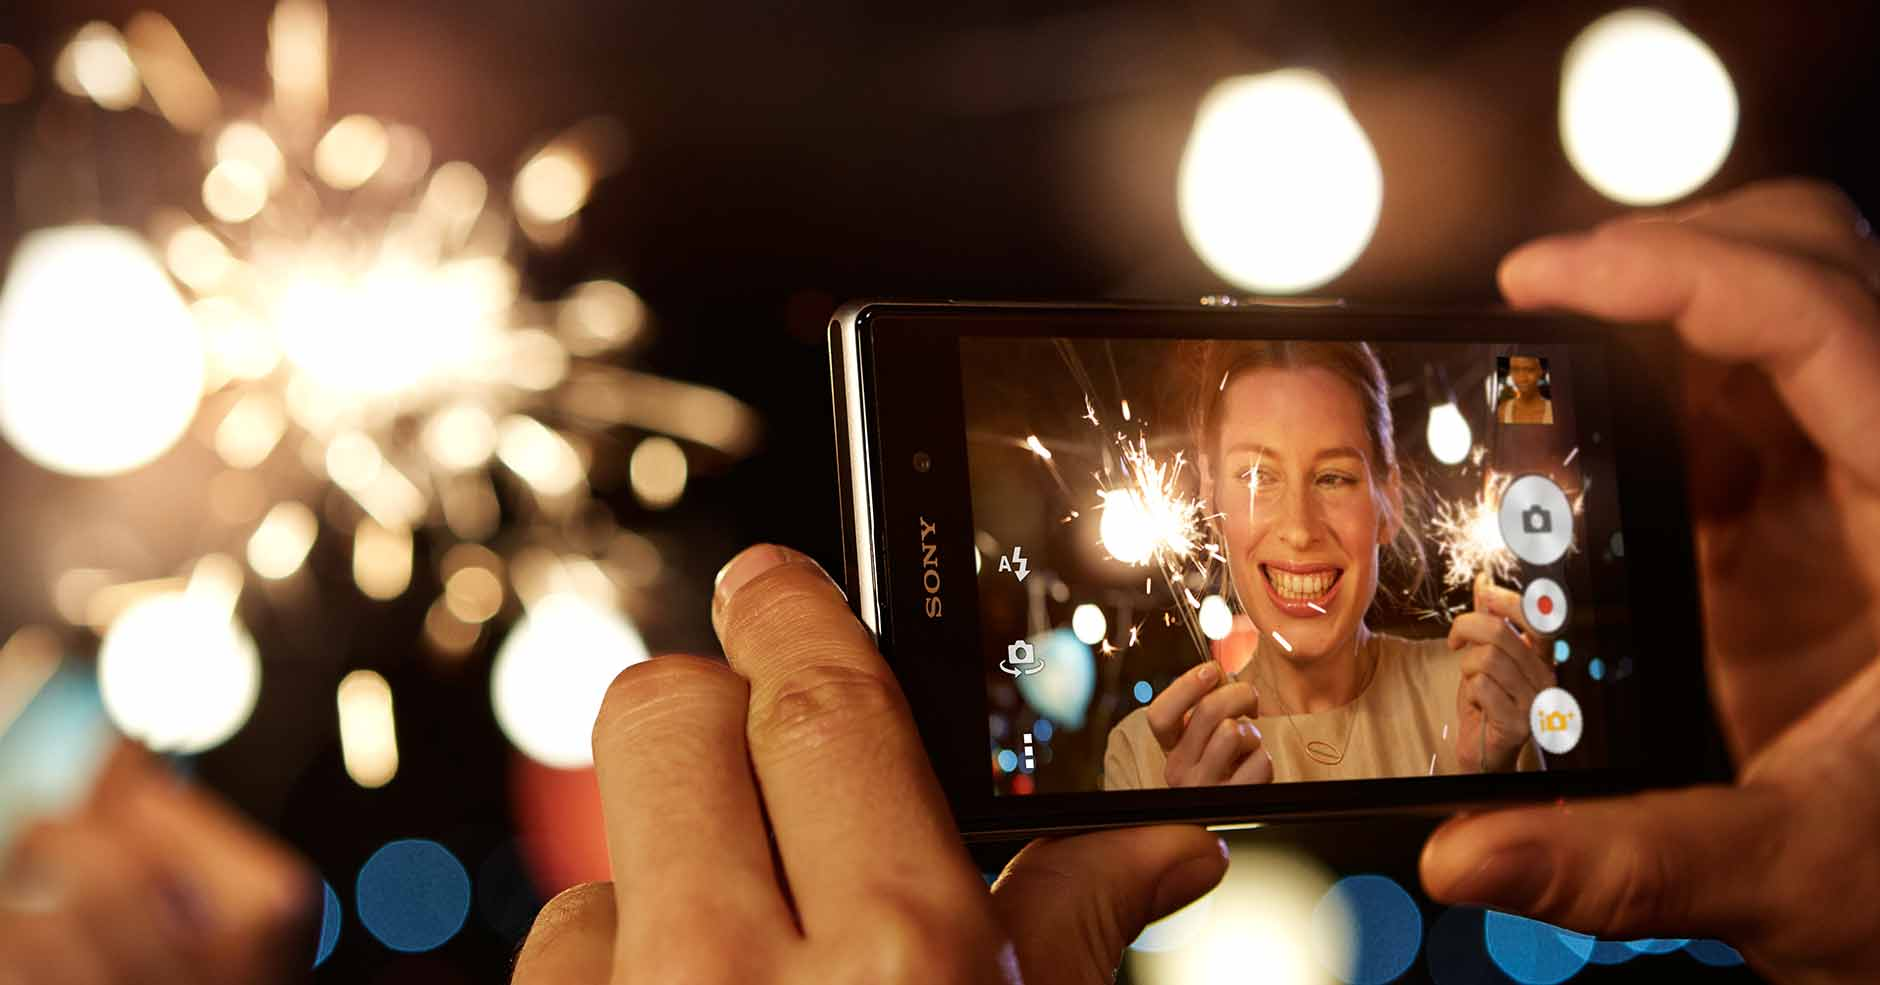 Capture the best blur-free images with the Xperia Z1 camera phone.